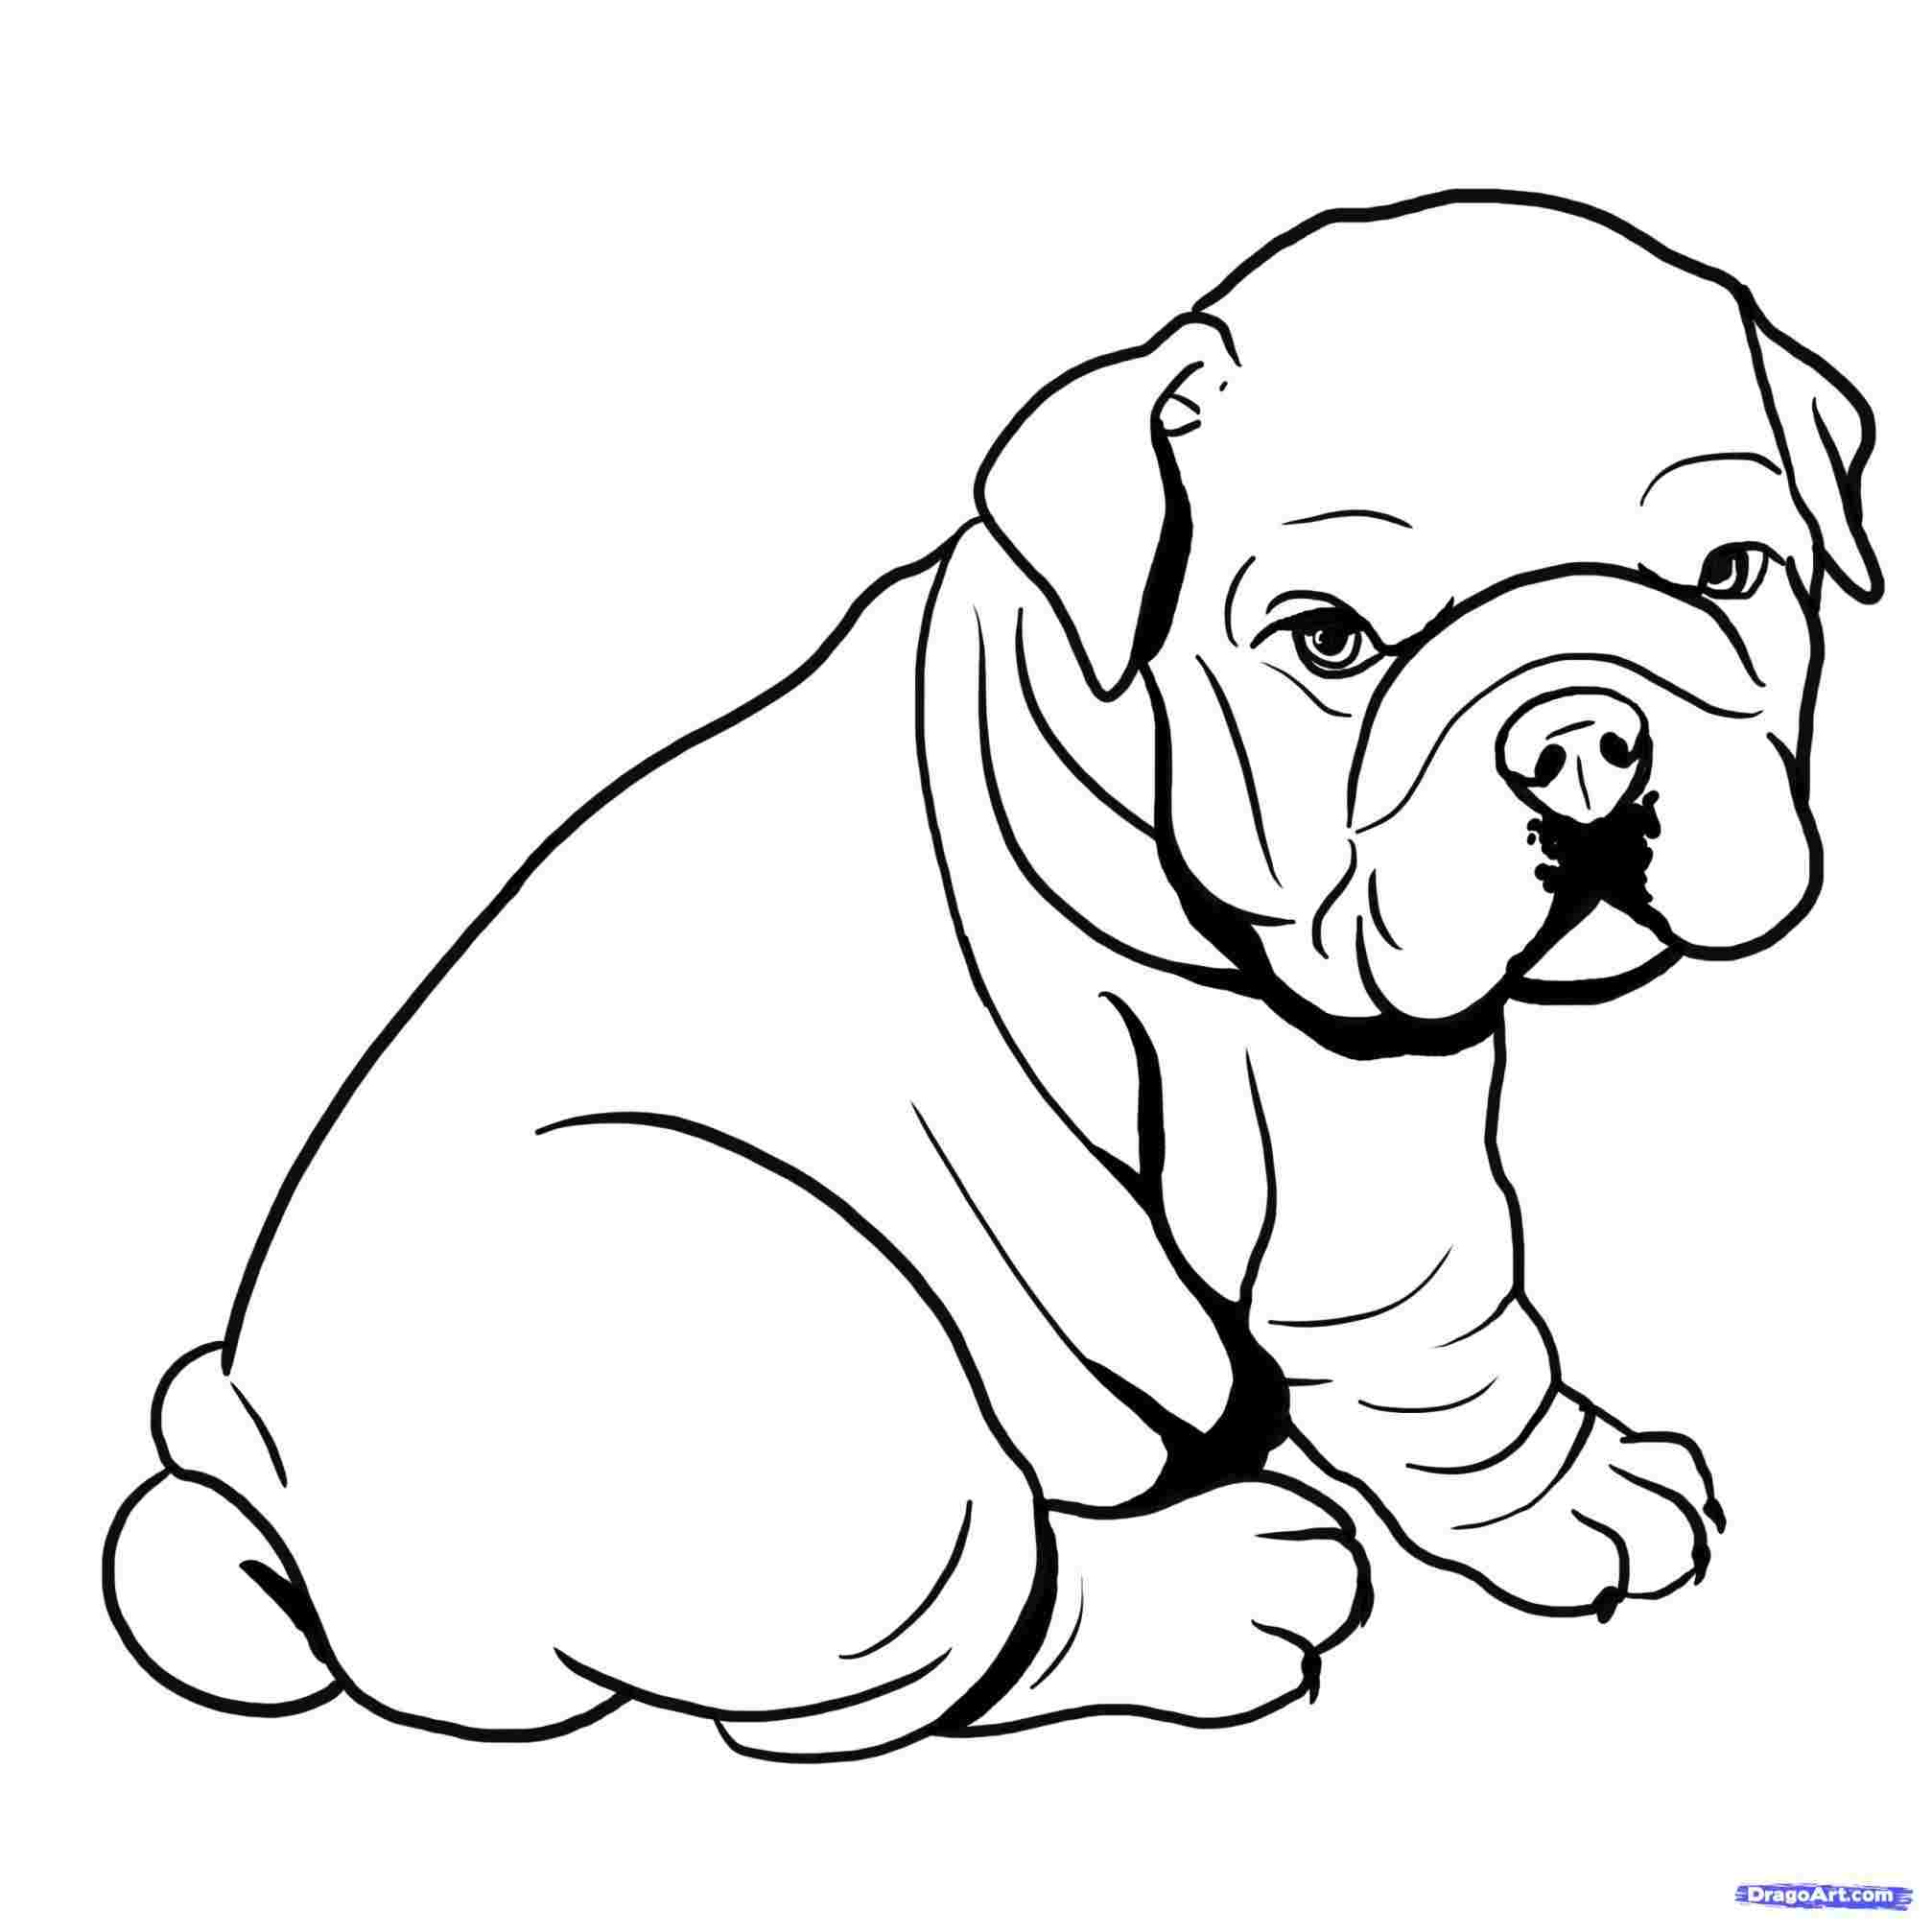 2014x2014 Cute Bulldog Drawings